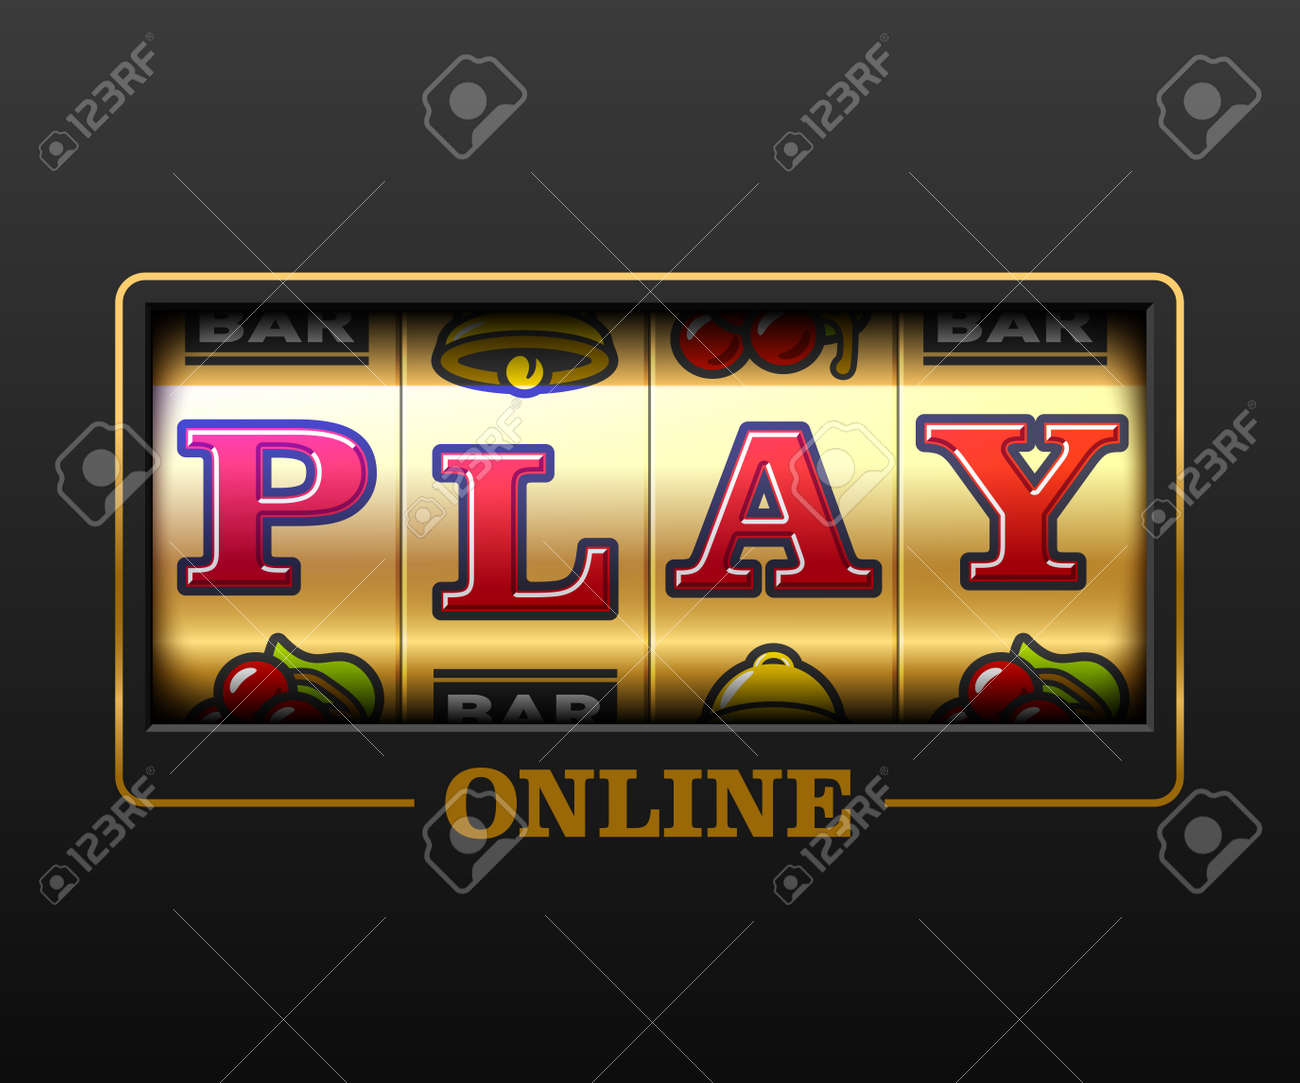 Play Online Slot Machine Games Banner Gambling Casino Games Royalty Free Cliparts Vectors And Stock Illustration Image 96494926